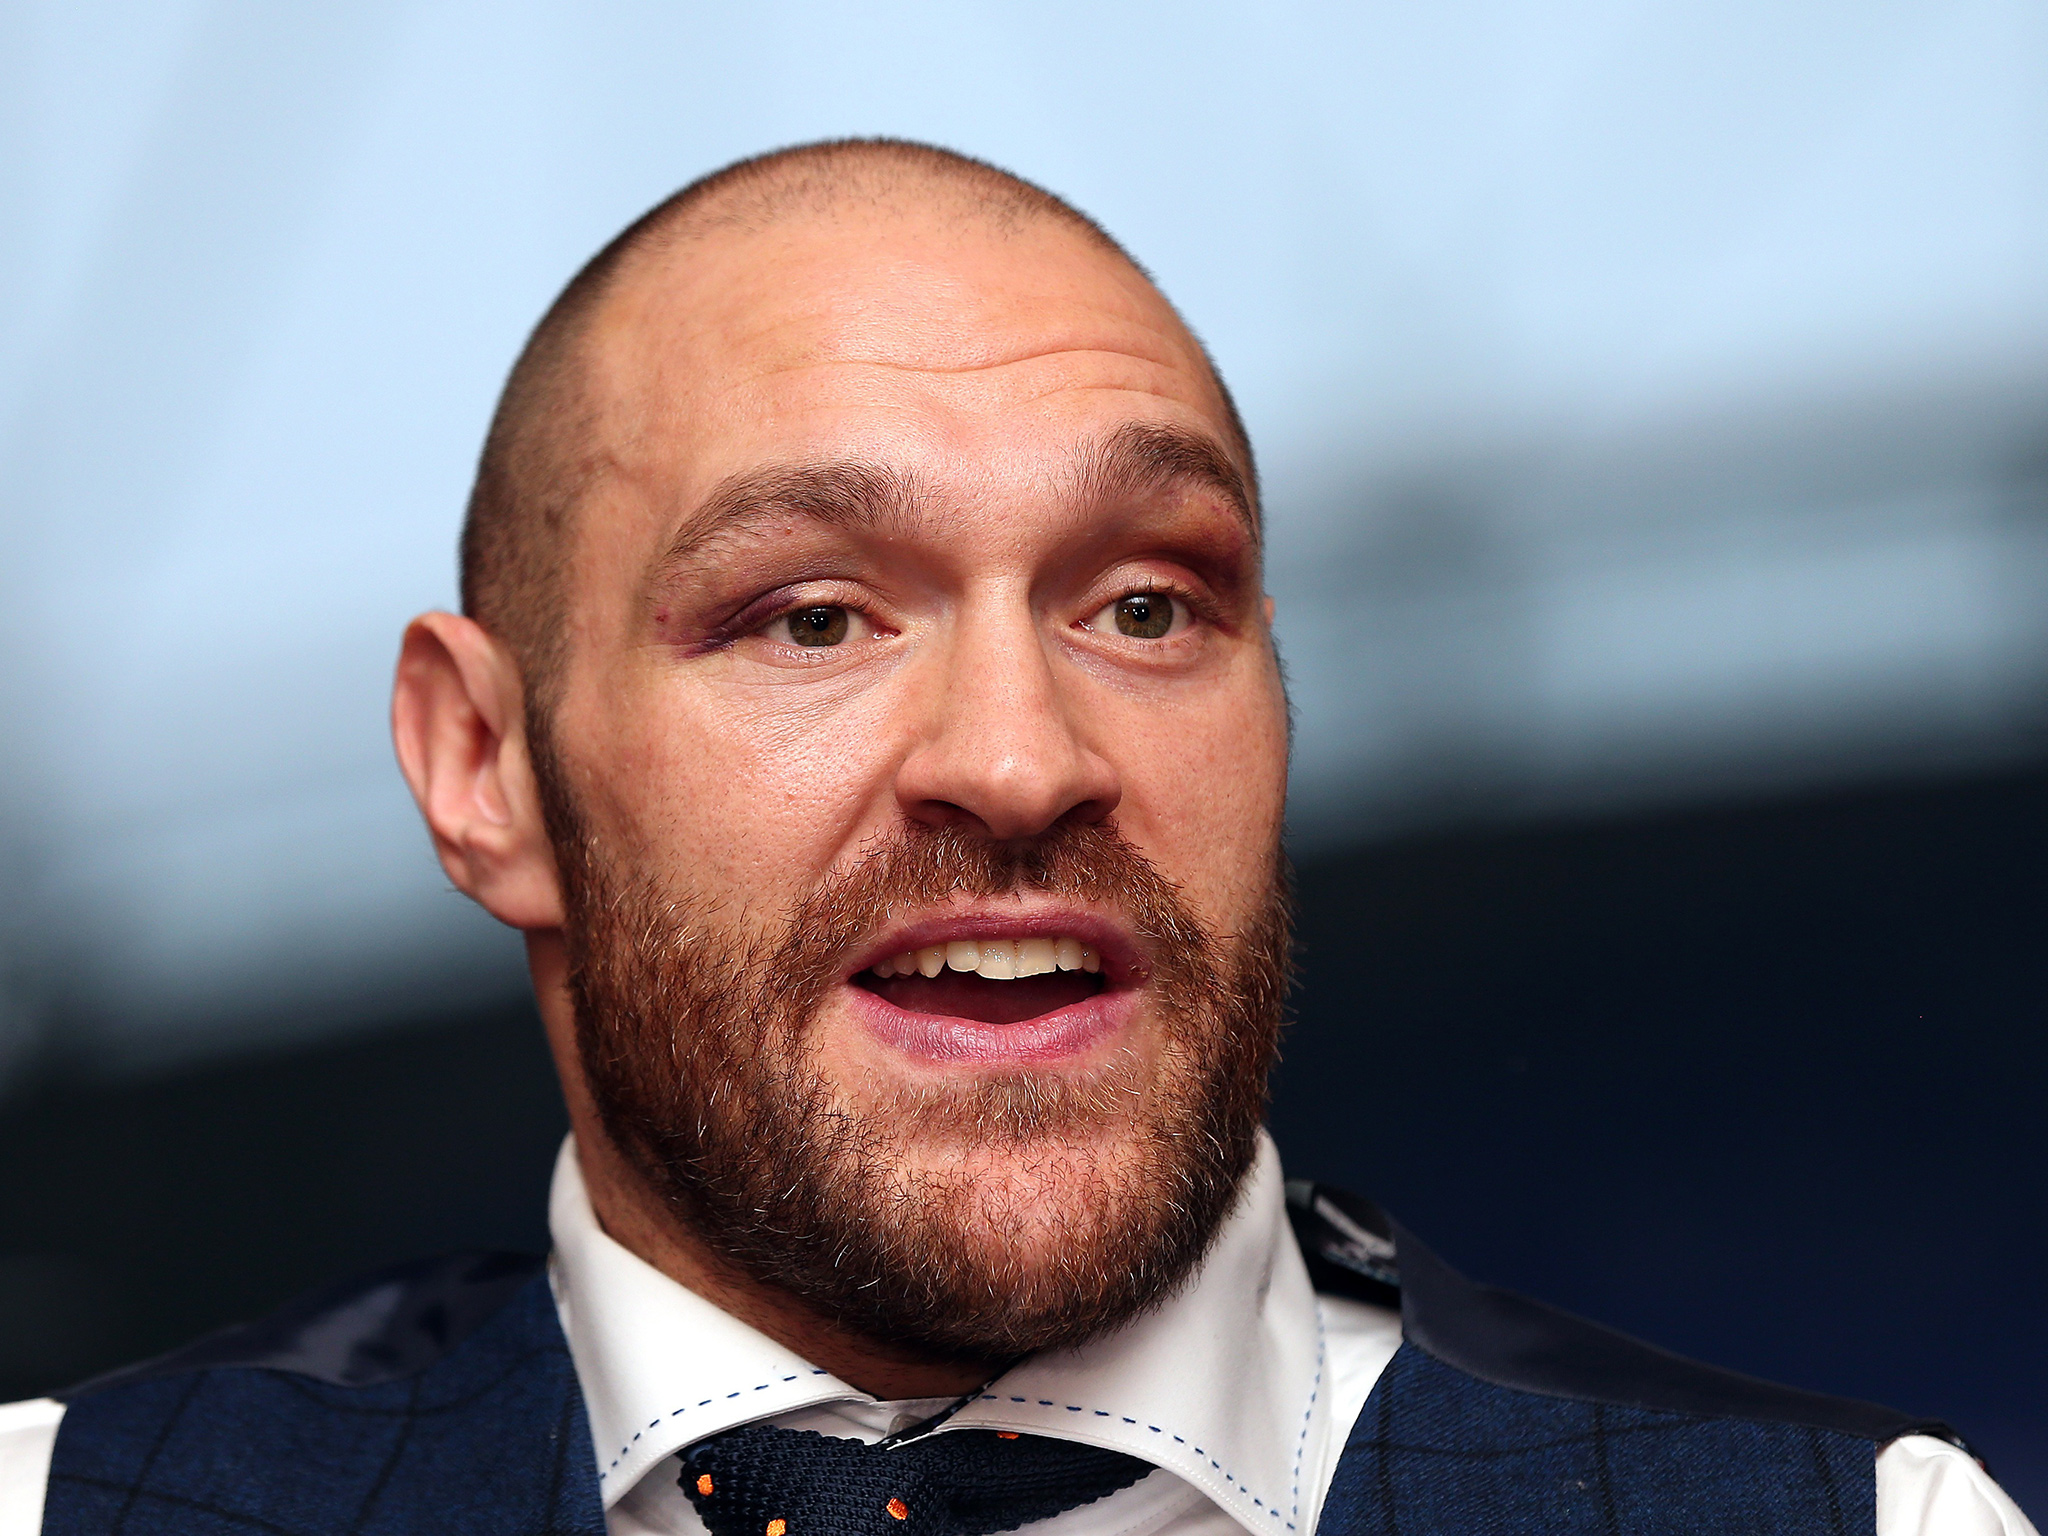 Tyson Fury has an opponent in Manchester as he ends his exile